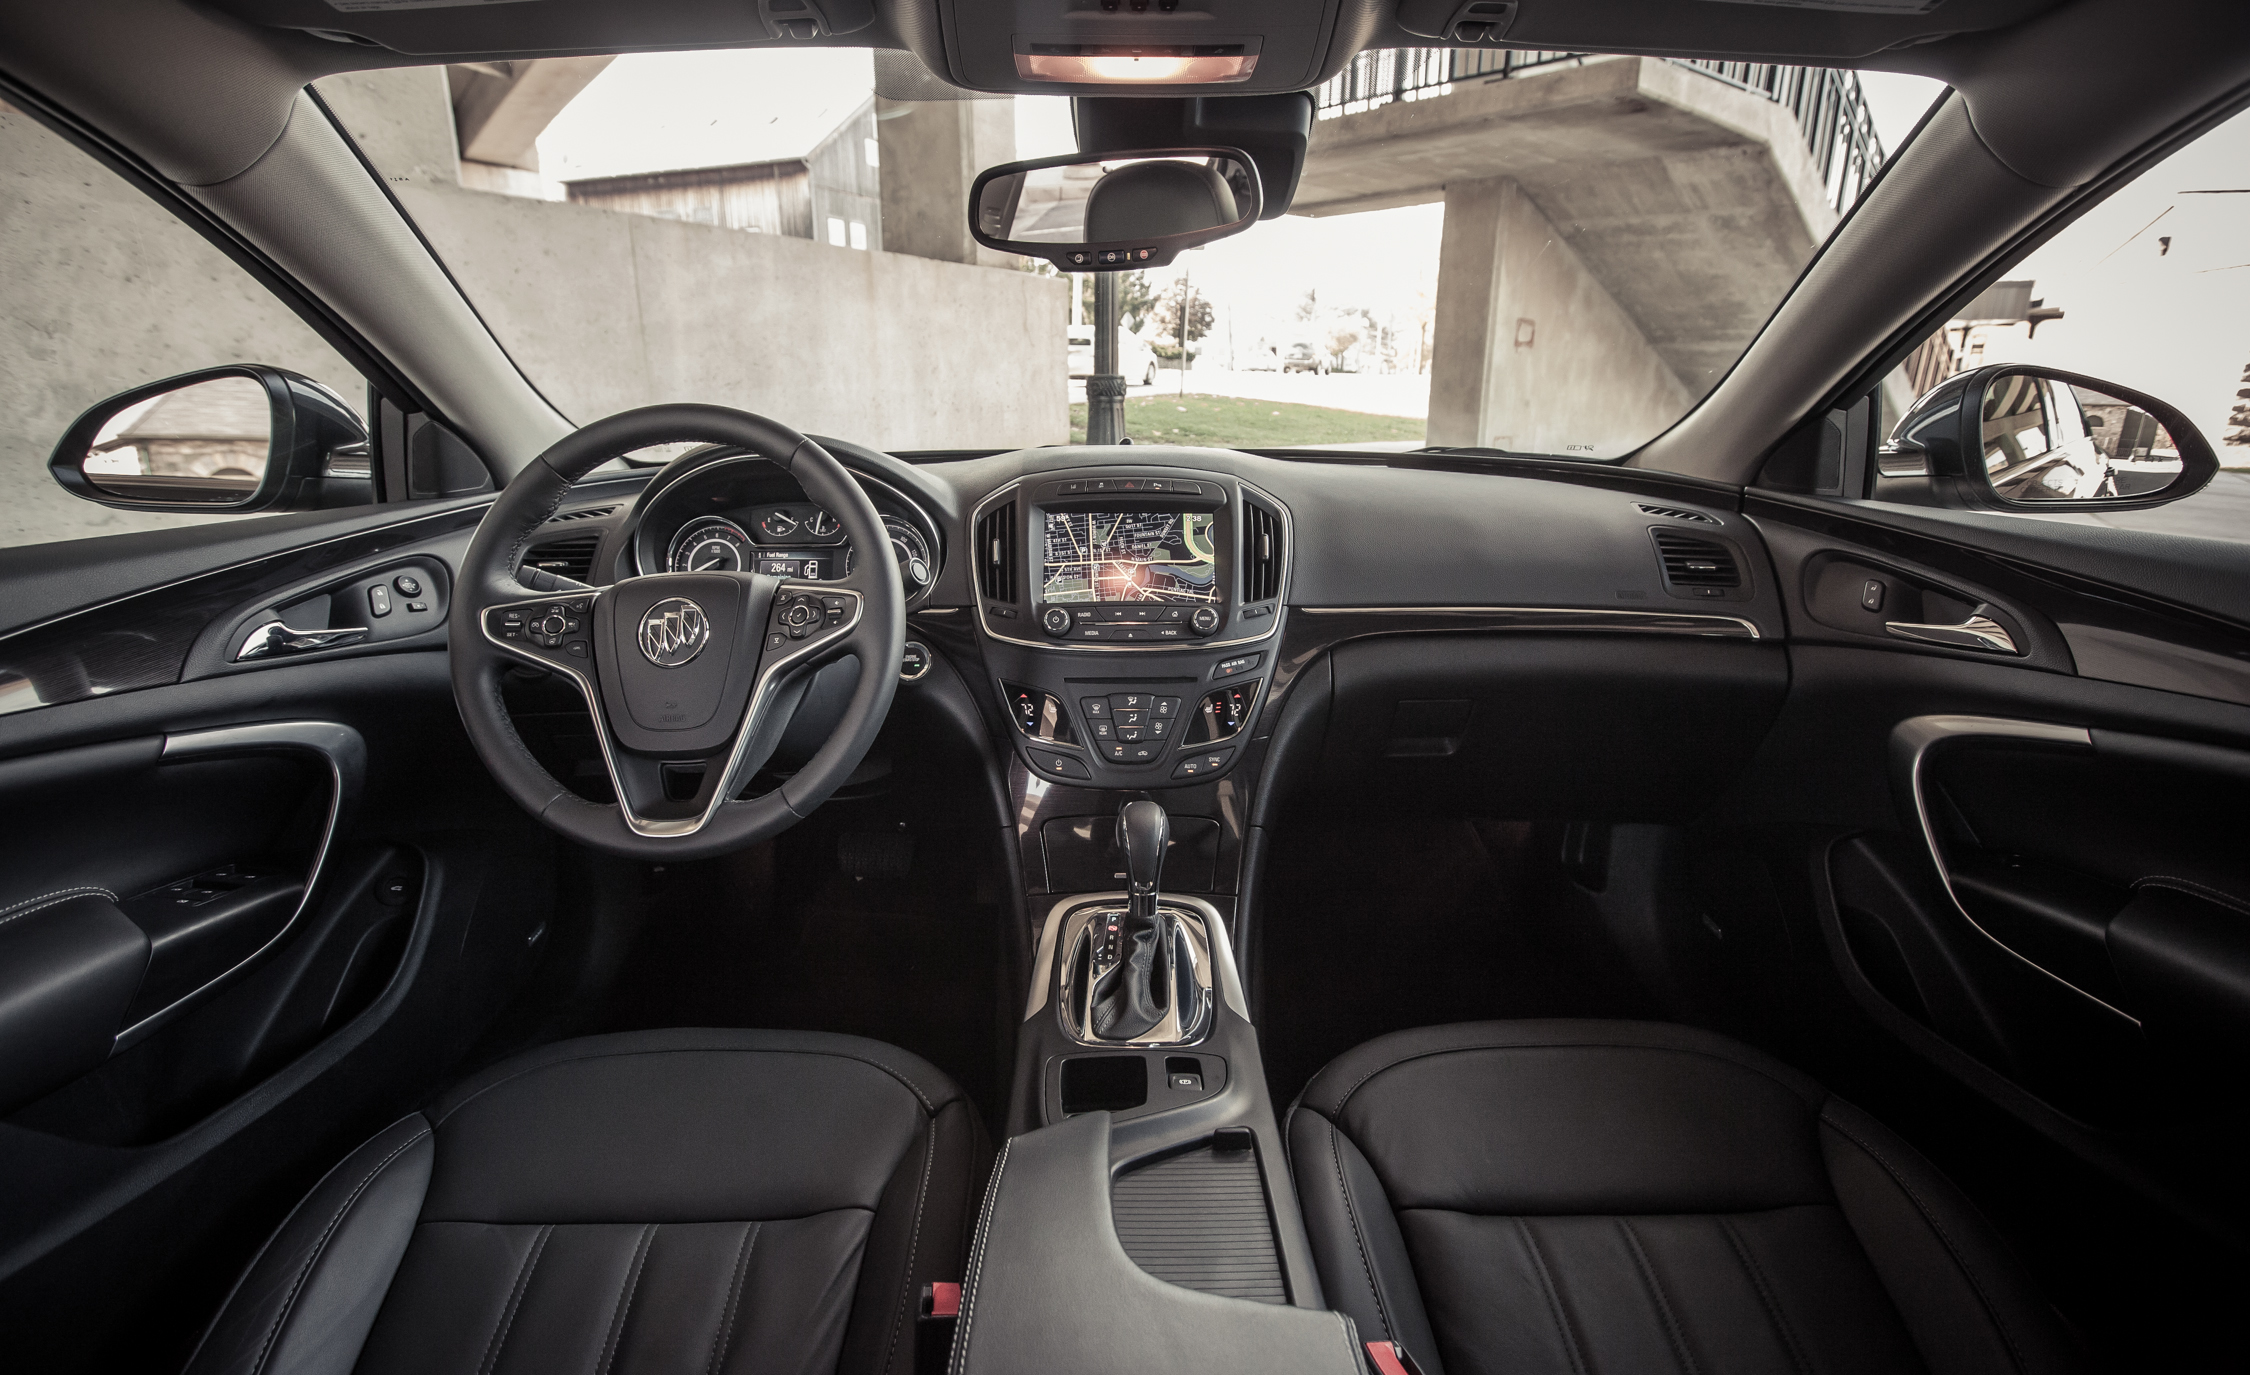 2014 Buick Regal Turbo Interior (Photo 23 of 30)